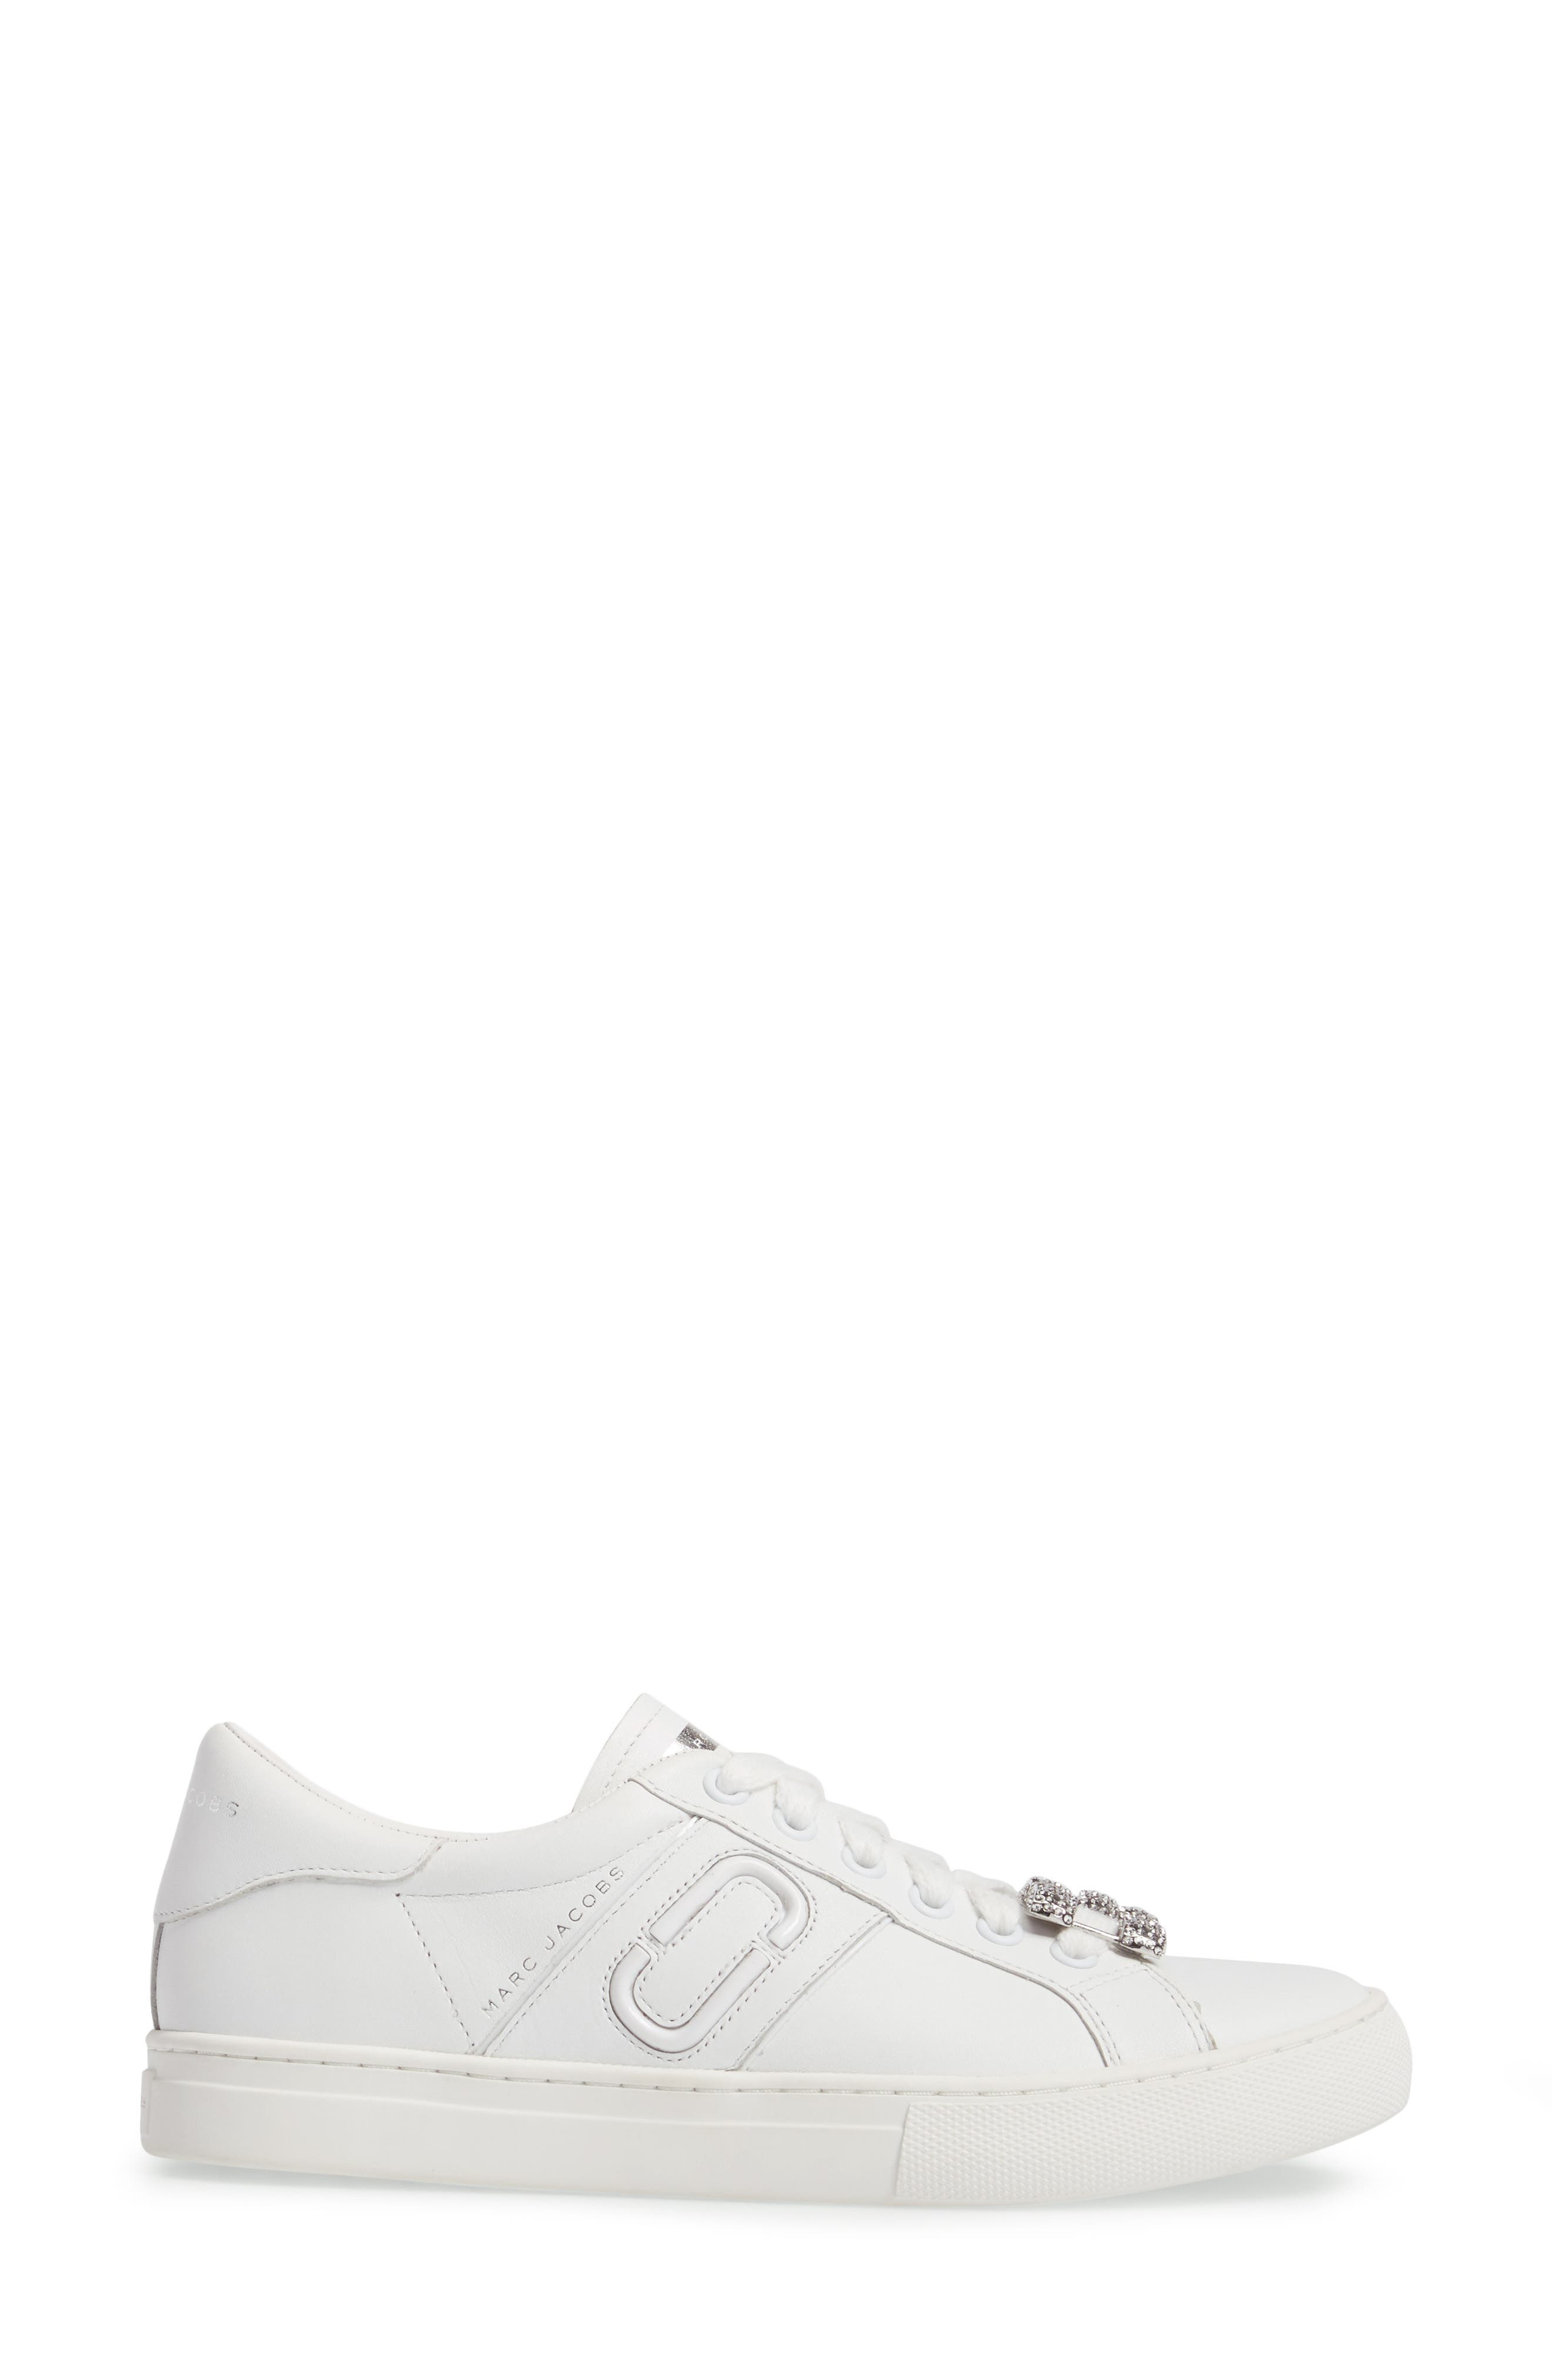 Alternate Image 3  - MARC JACOBS Empire Chain Link Sneaker (Women)